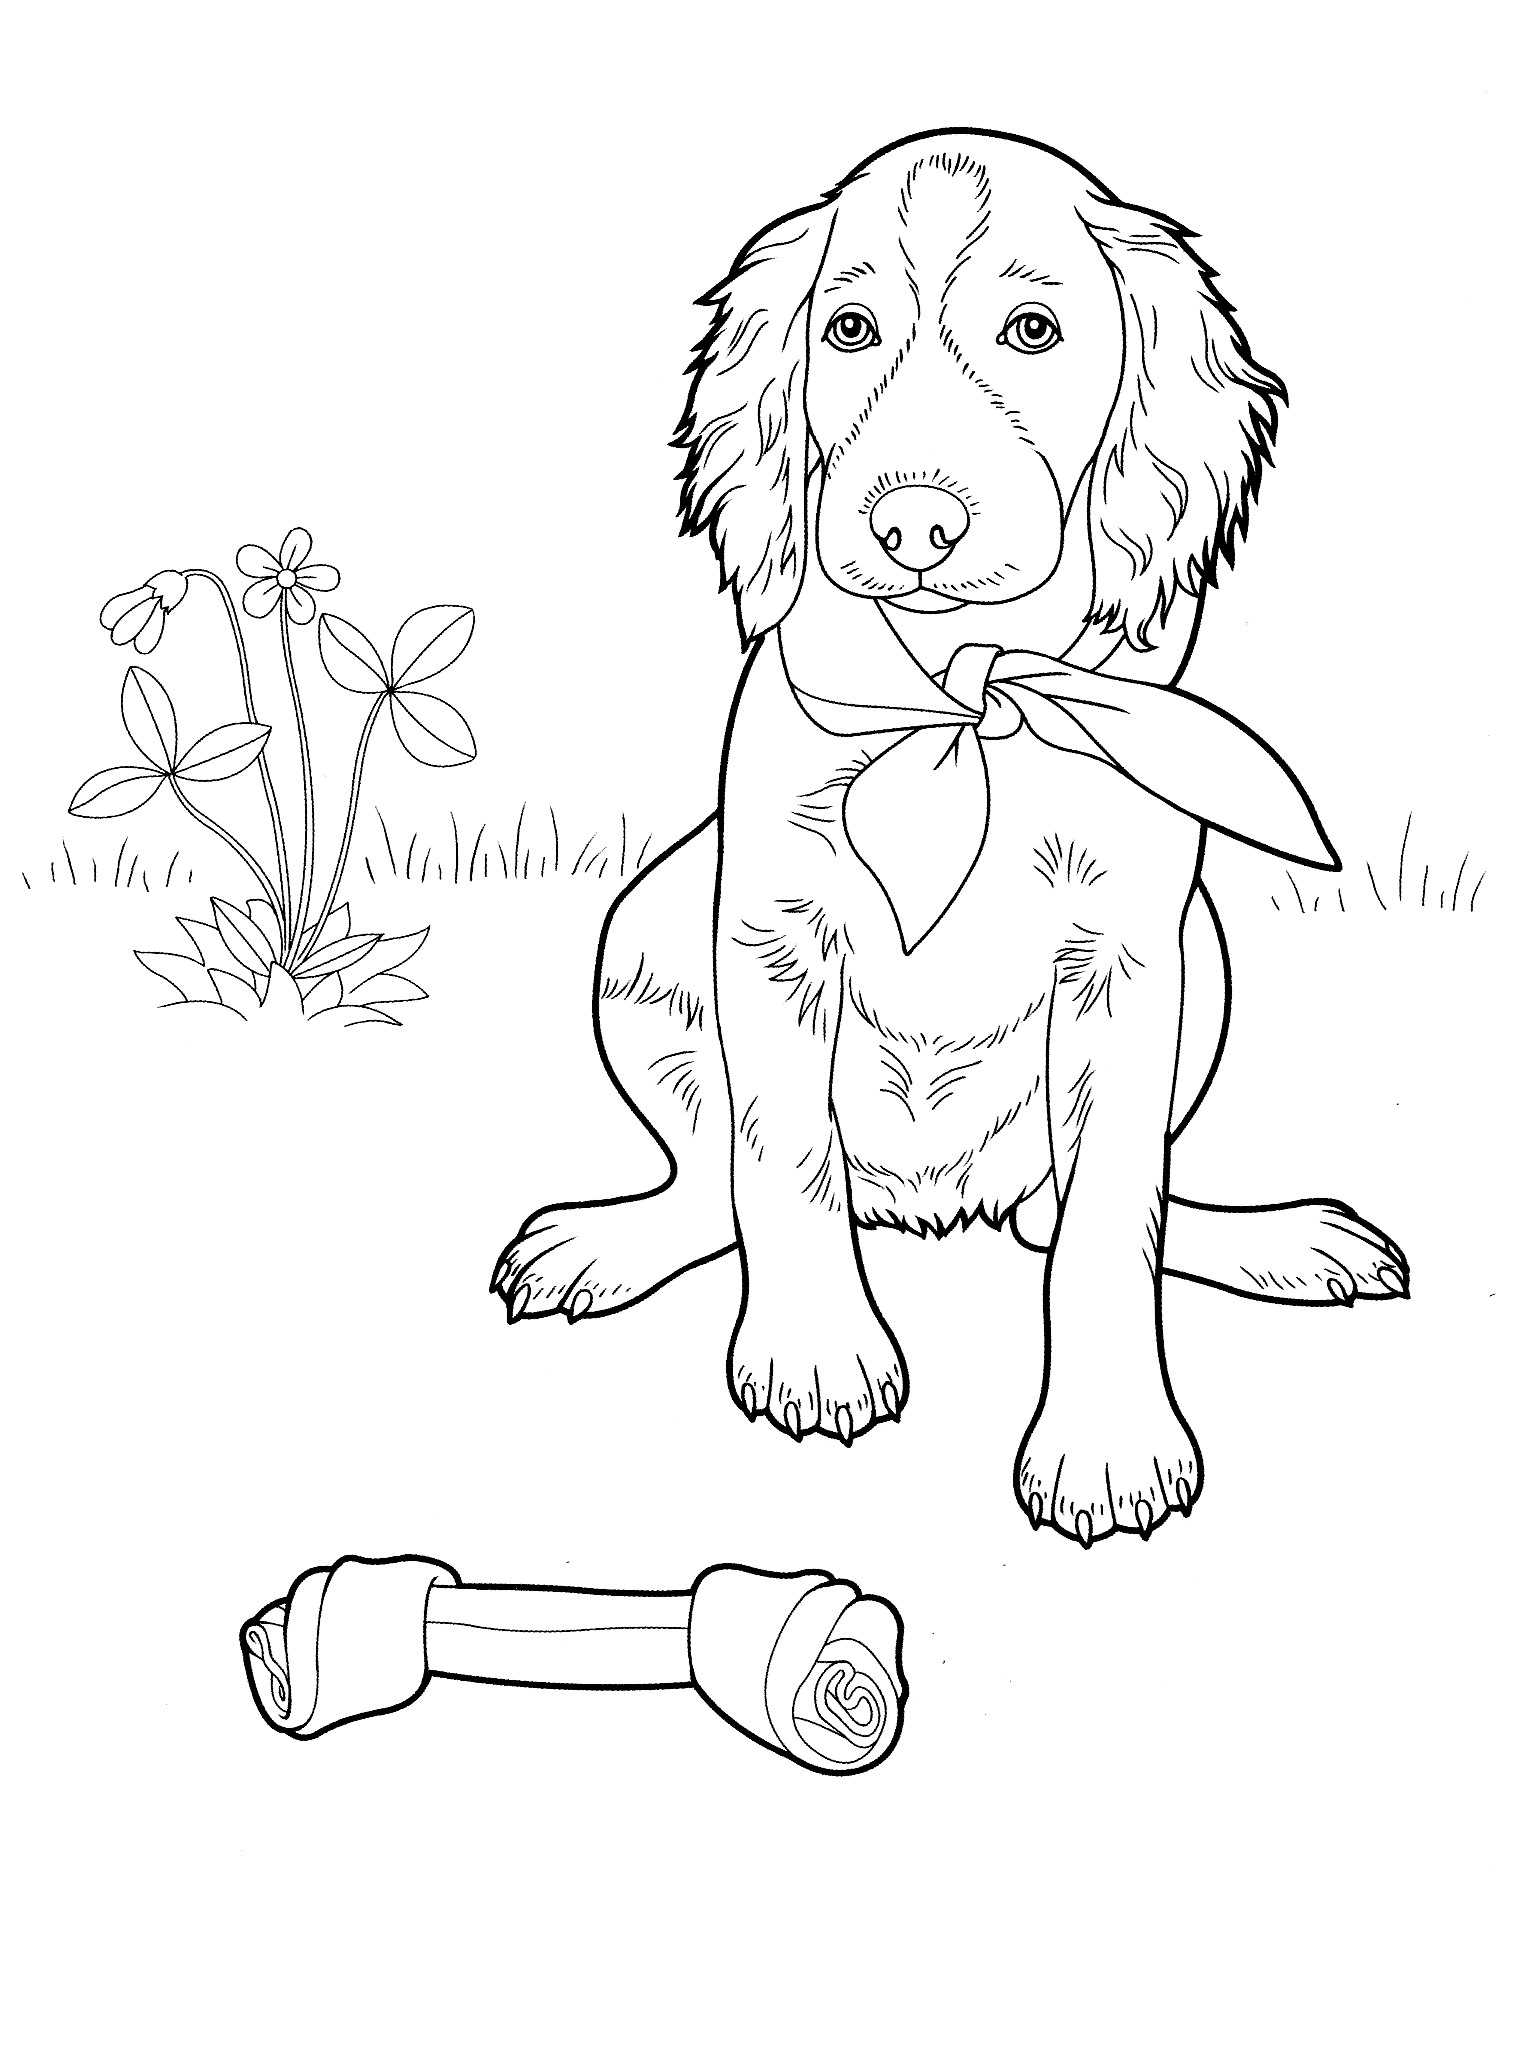 It is a picture of Accomplished Adult Coloring Page Dog